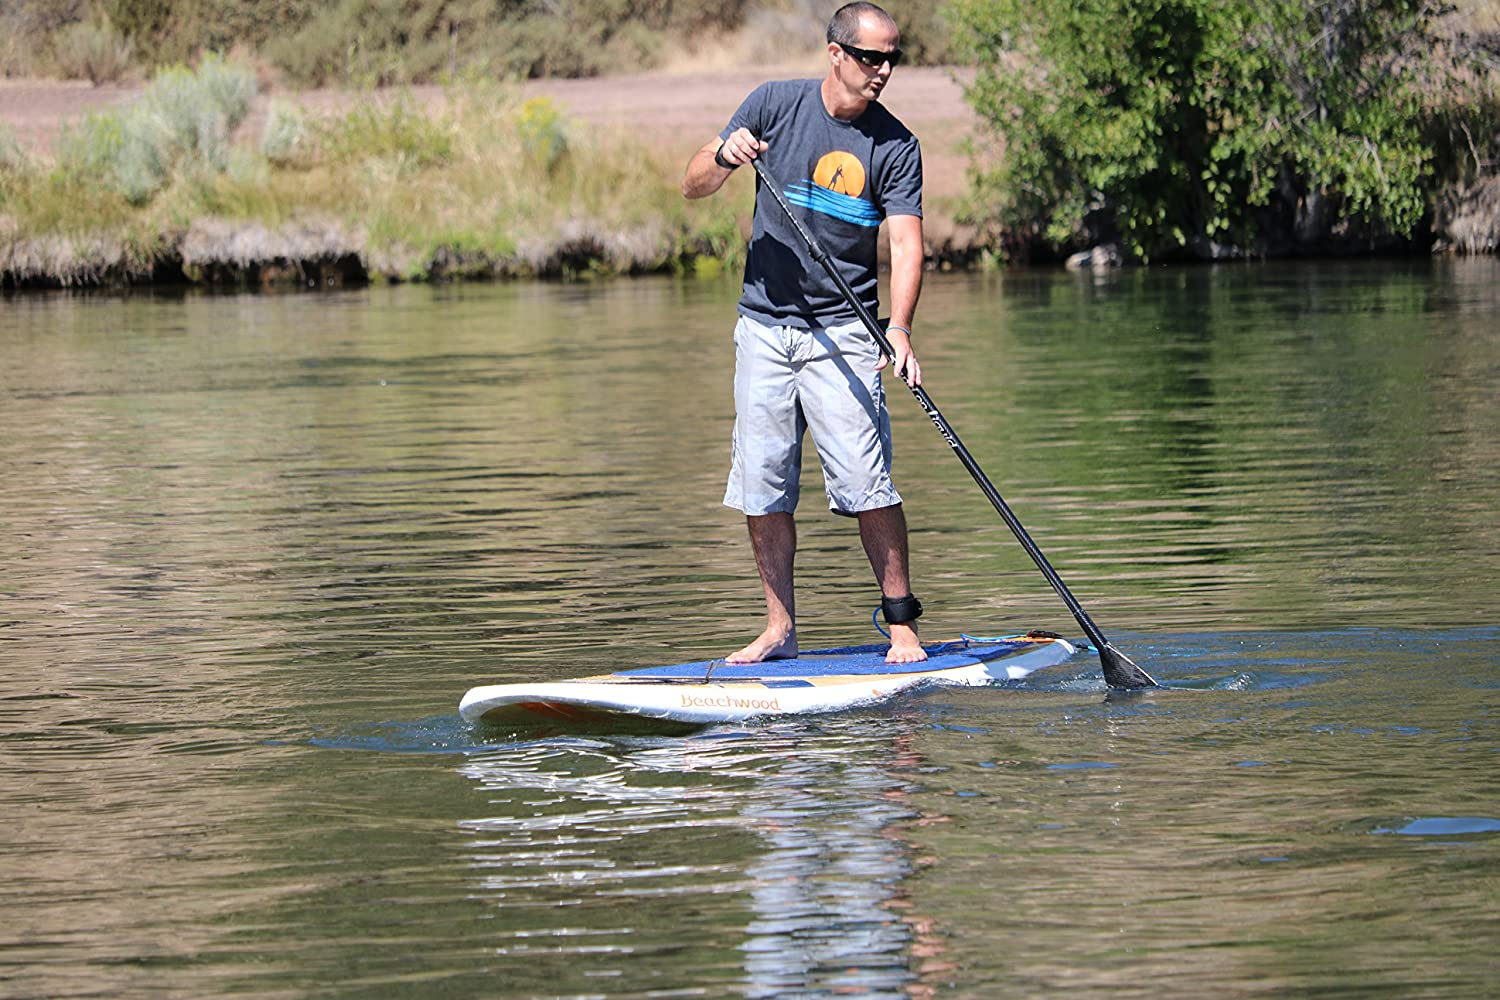 Amazon.com : Stand on Liquid Beachwood LT 11 Foot All Around (Surf) Stand Up Paddle Board (SUP) Package | Includes Fiberglass Adjustable Paddle, Cargo Net, ...